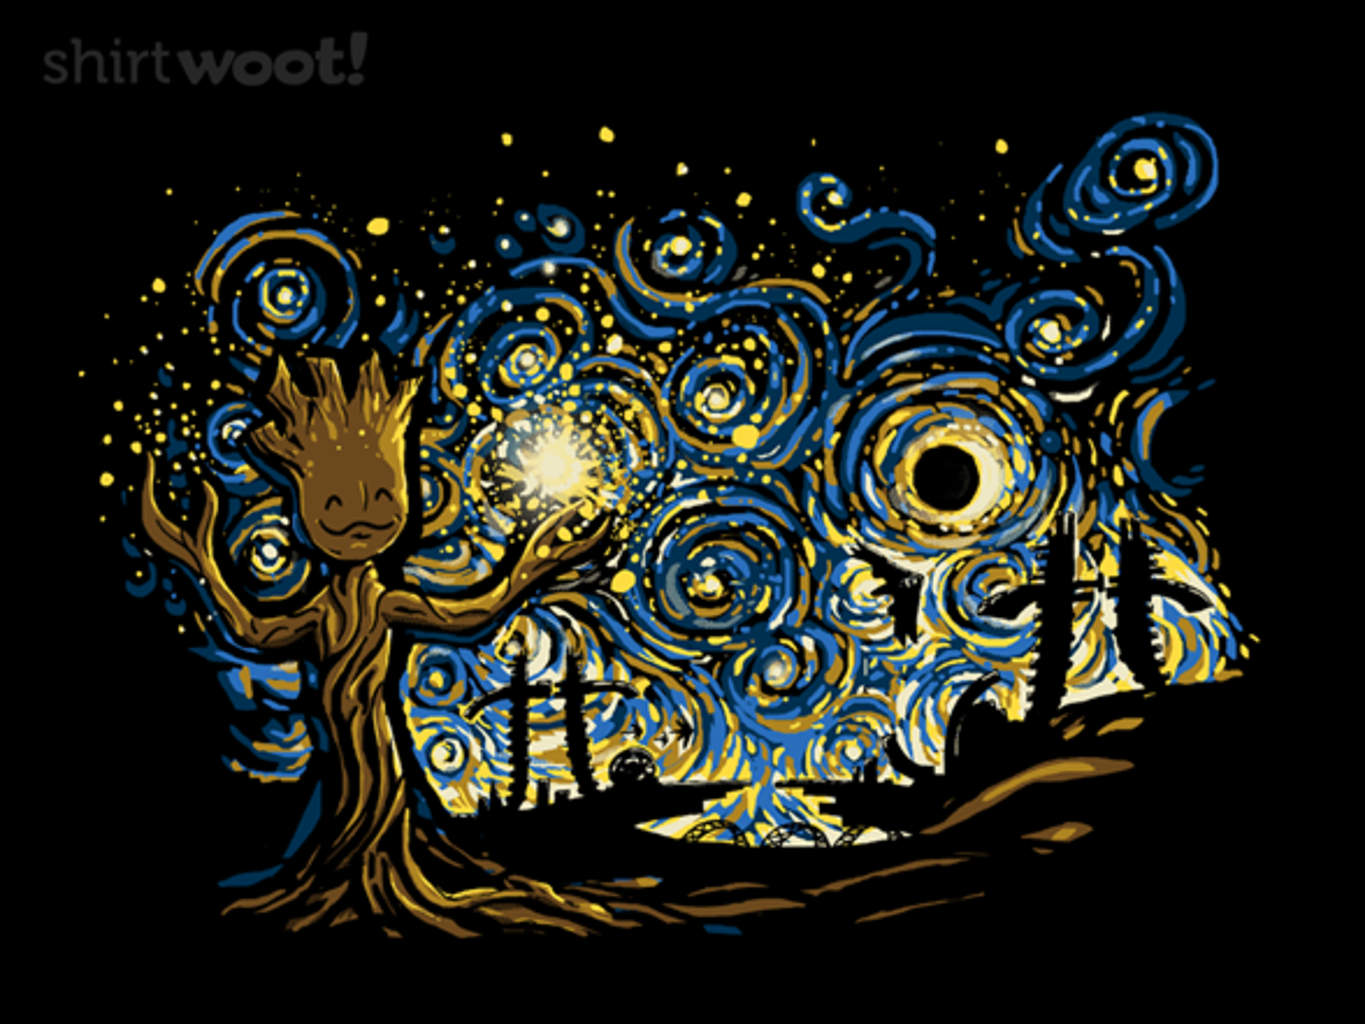 Woot!: Vincent Van Groot - $15.00 + Free shipping